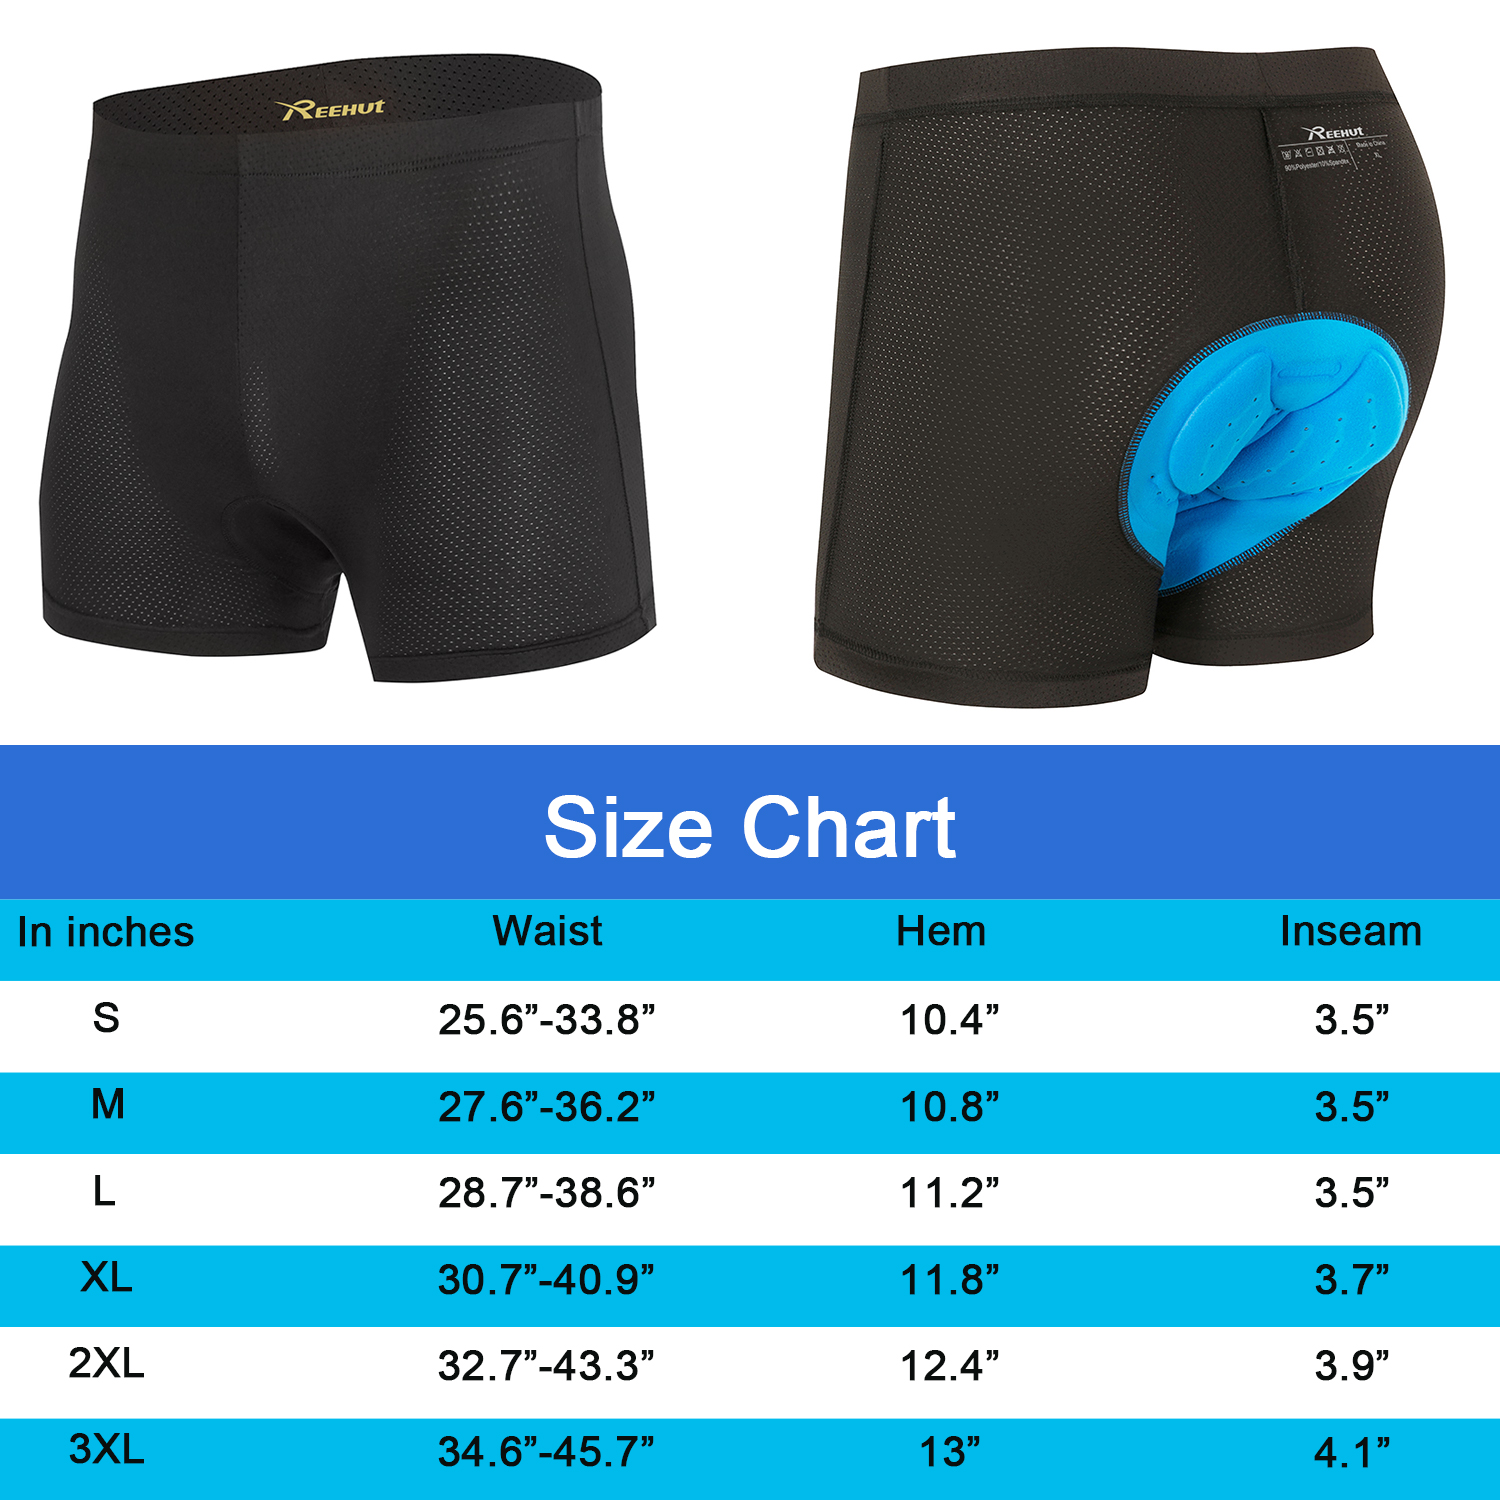 "REEHUT Men/'s 3D Padded Bicycle Cycling Underwear Shorts M Waist 27.2/""-36.2/"""